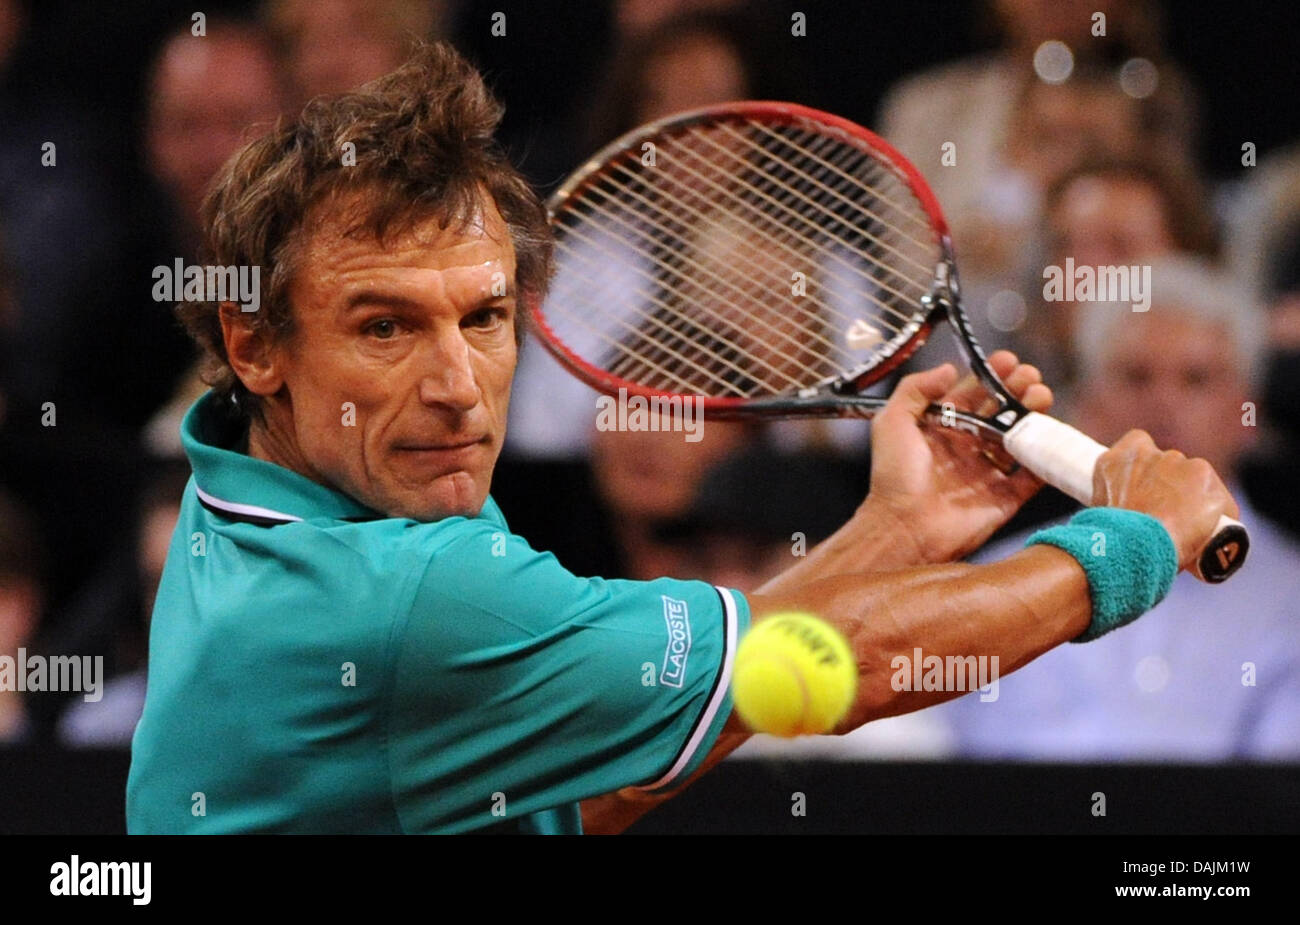 The former professional tennis player Mats Wilander plays a